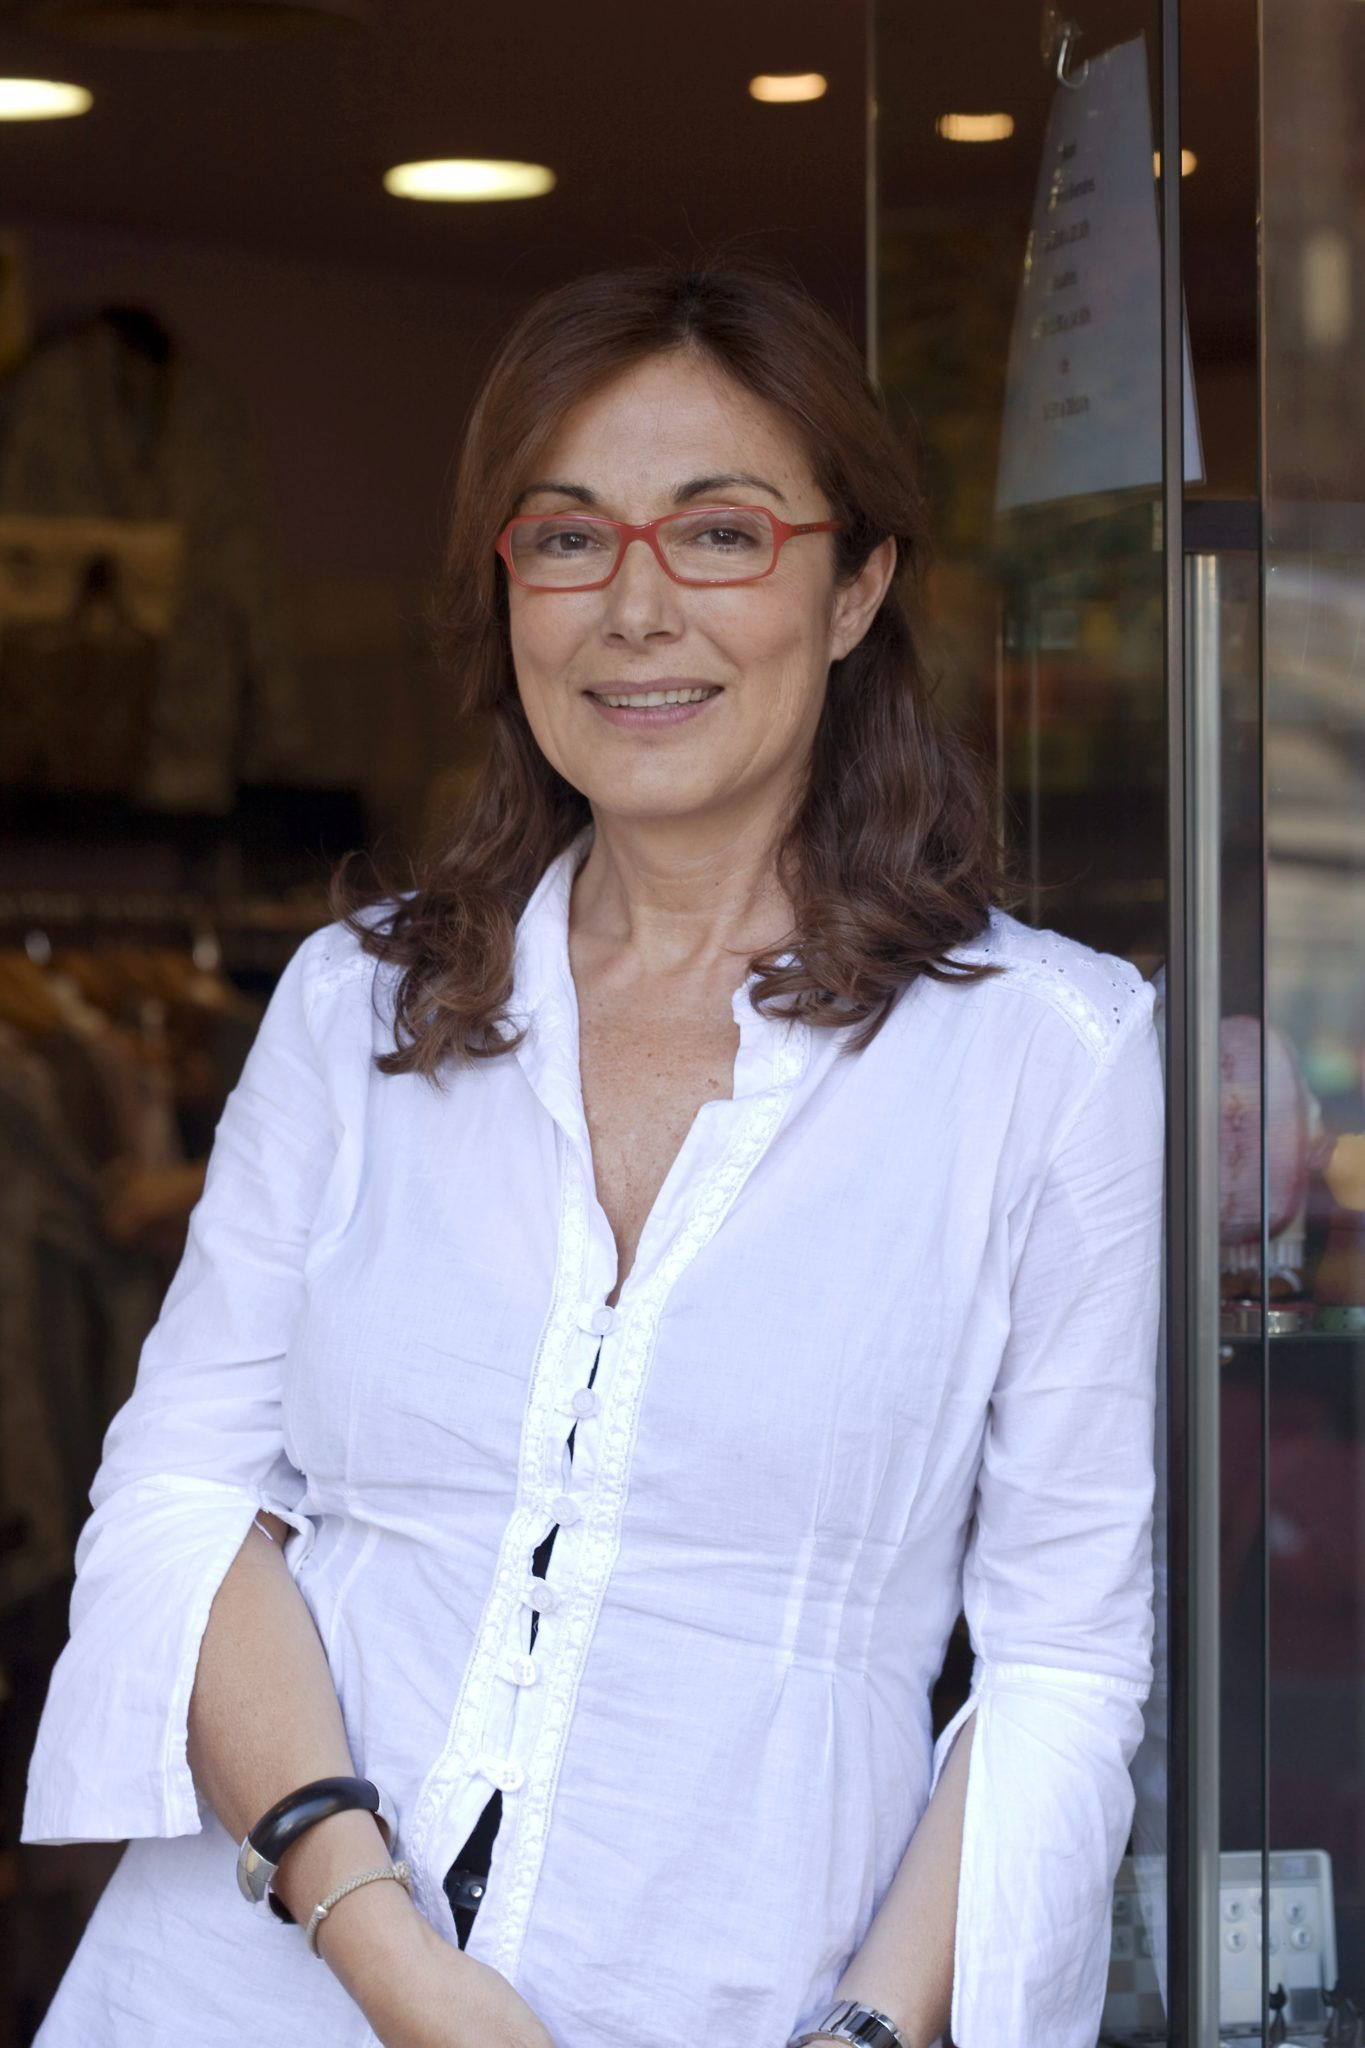 Carme Canals